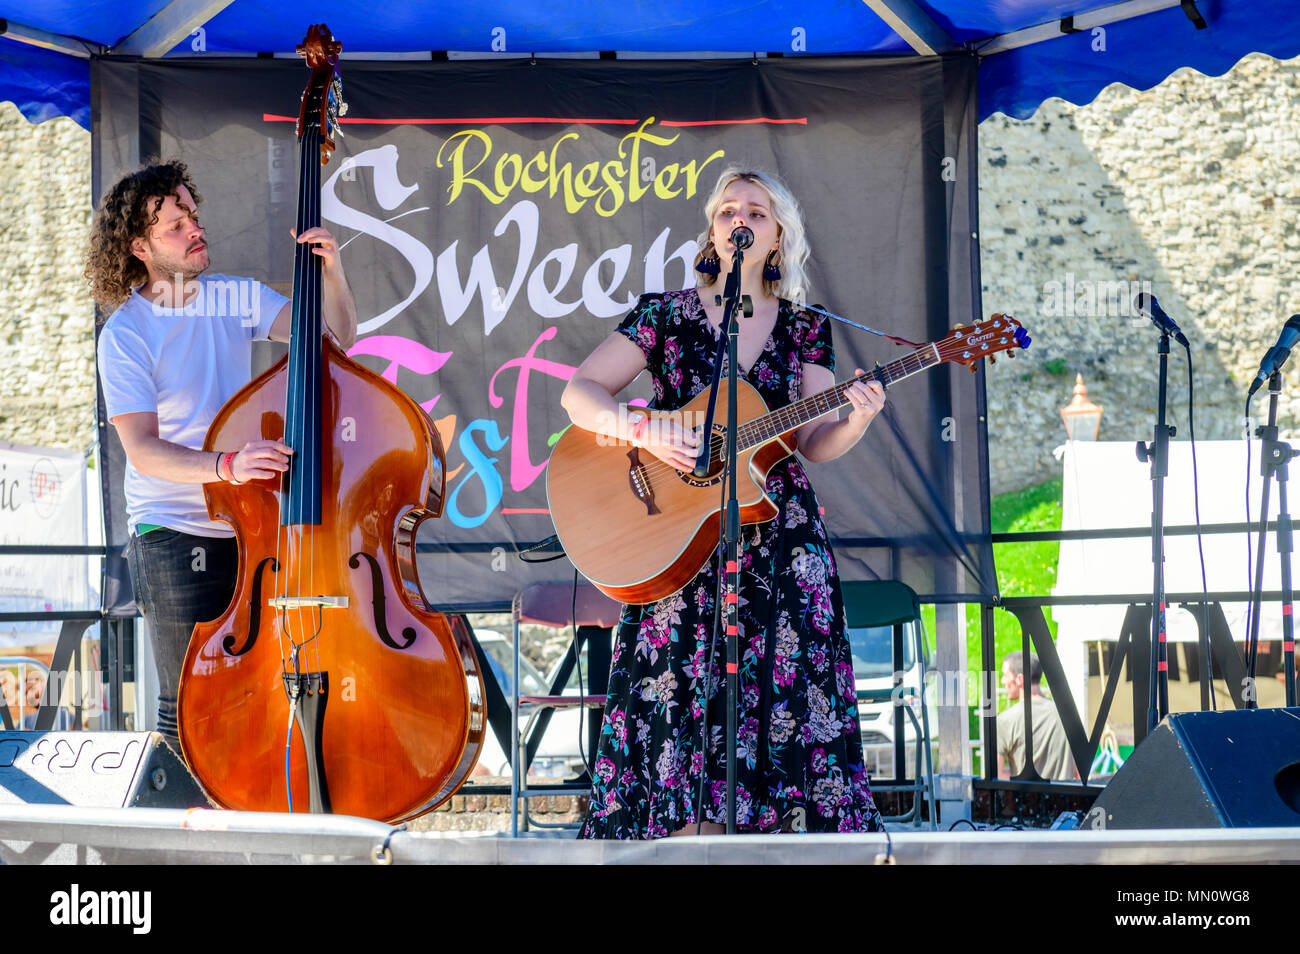 Duo singing and playing guitar and double base at the rochester sweeps festival - Stock Image